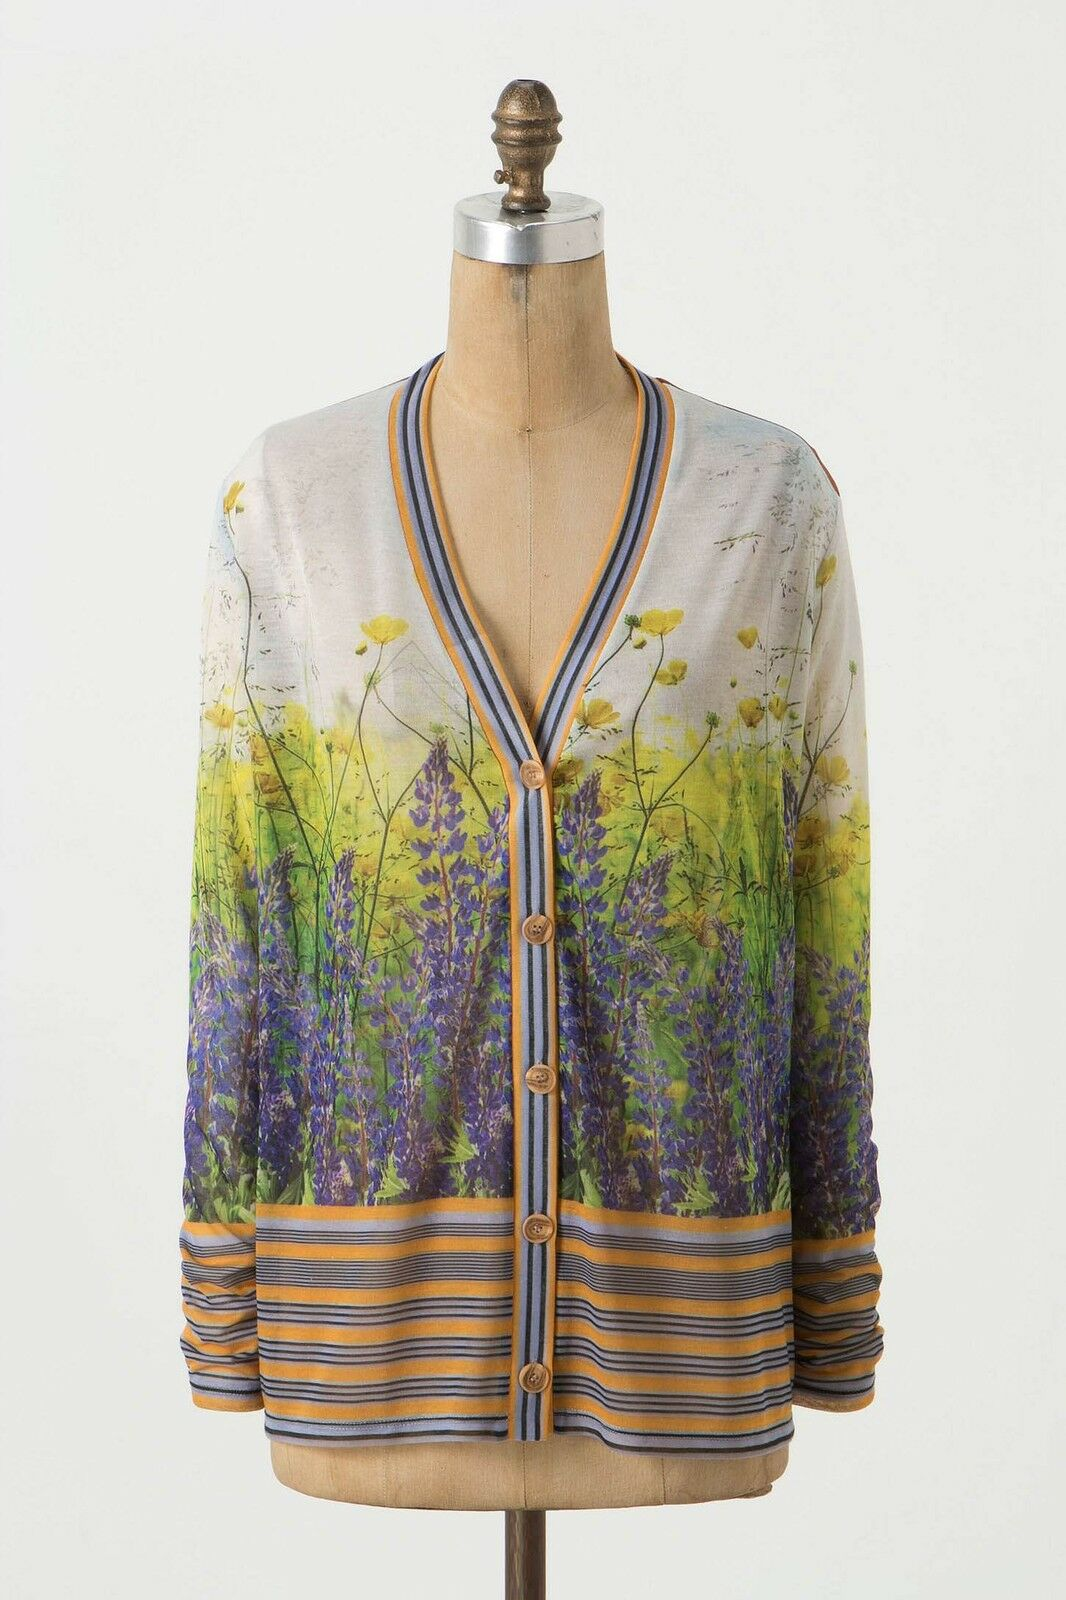 NWT Anthropologie Floretum Cardigan sweater by Dream Daily Size S Small